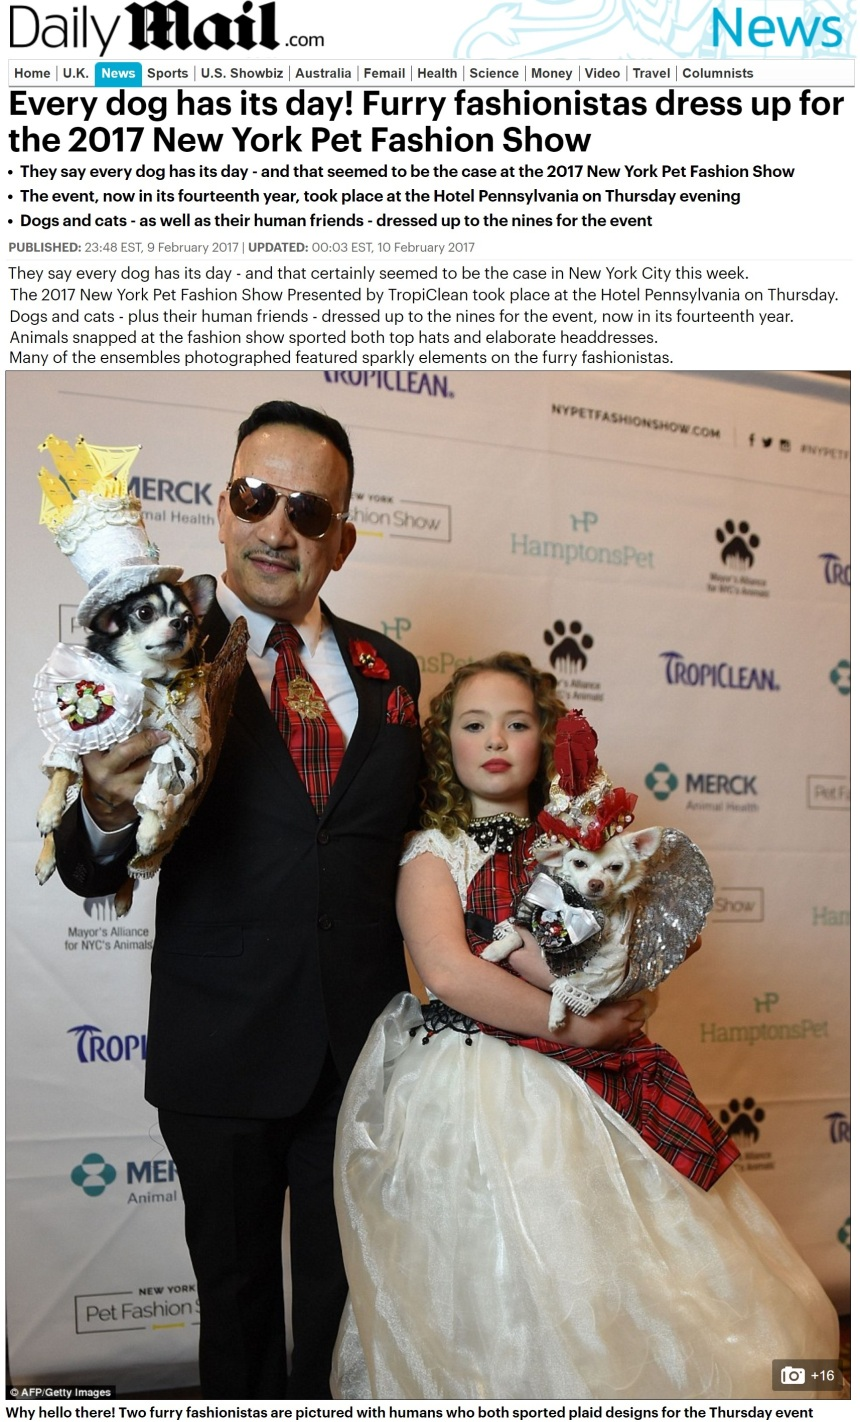 Anthony Rubio featured in the UK Daily Mail. Photo taken at the 2017 New York Pet Fashion show